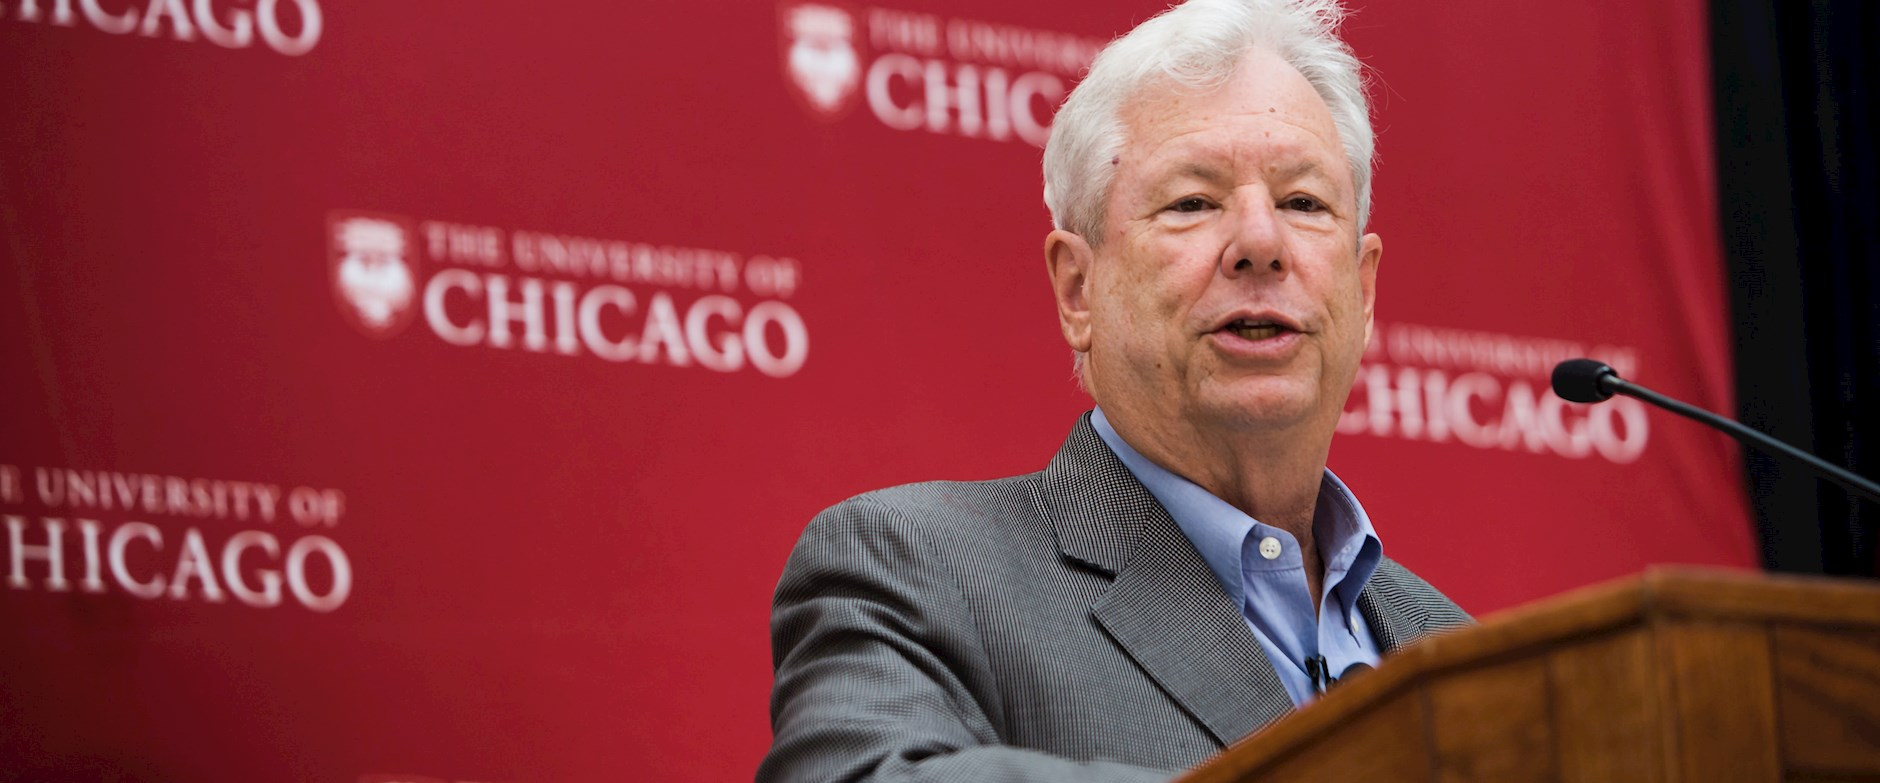 Chicago Booth Professor Richard Thaler standing at a podium, speaking after winning the 2017 Nobel Prize in Economics before a press conference at Harper